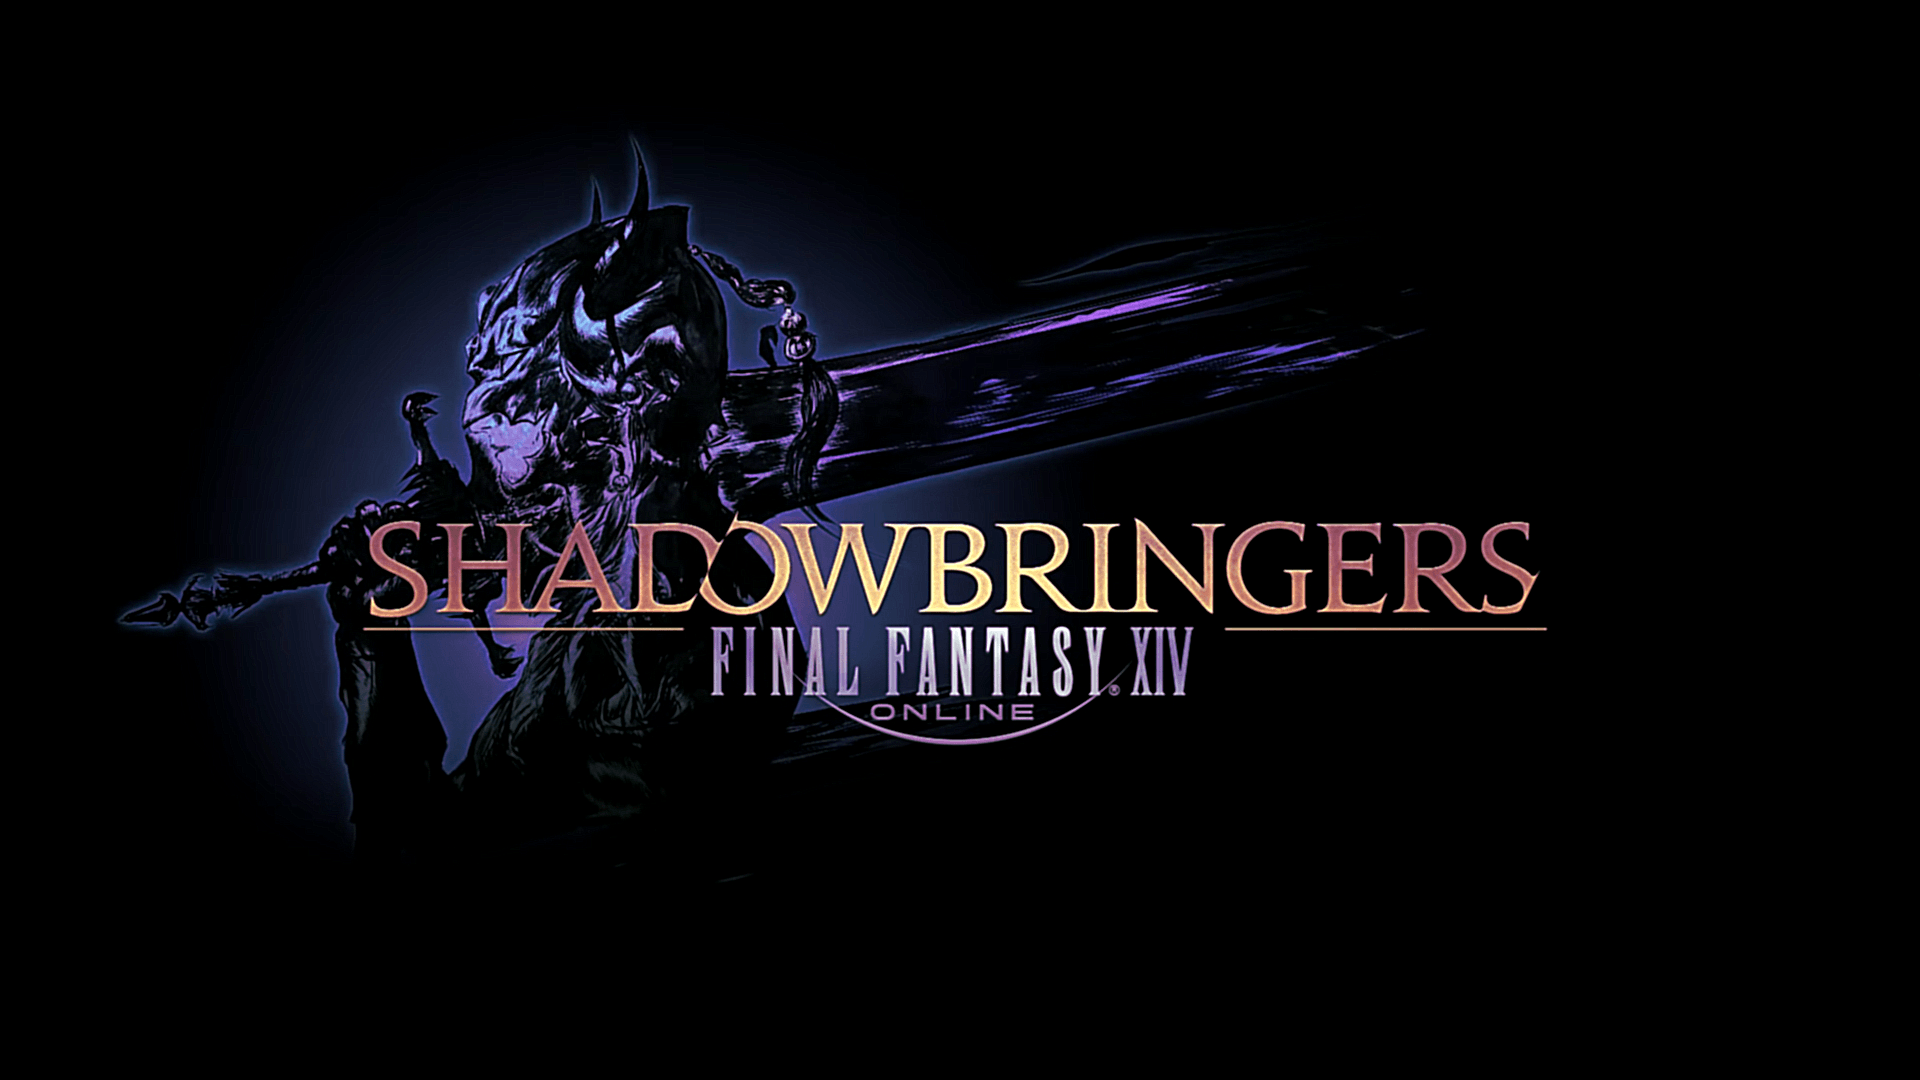 Final Fantasy Xiv Shadow Bringers Wallpapers Wallpaper Cave